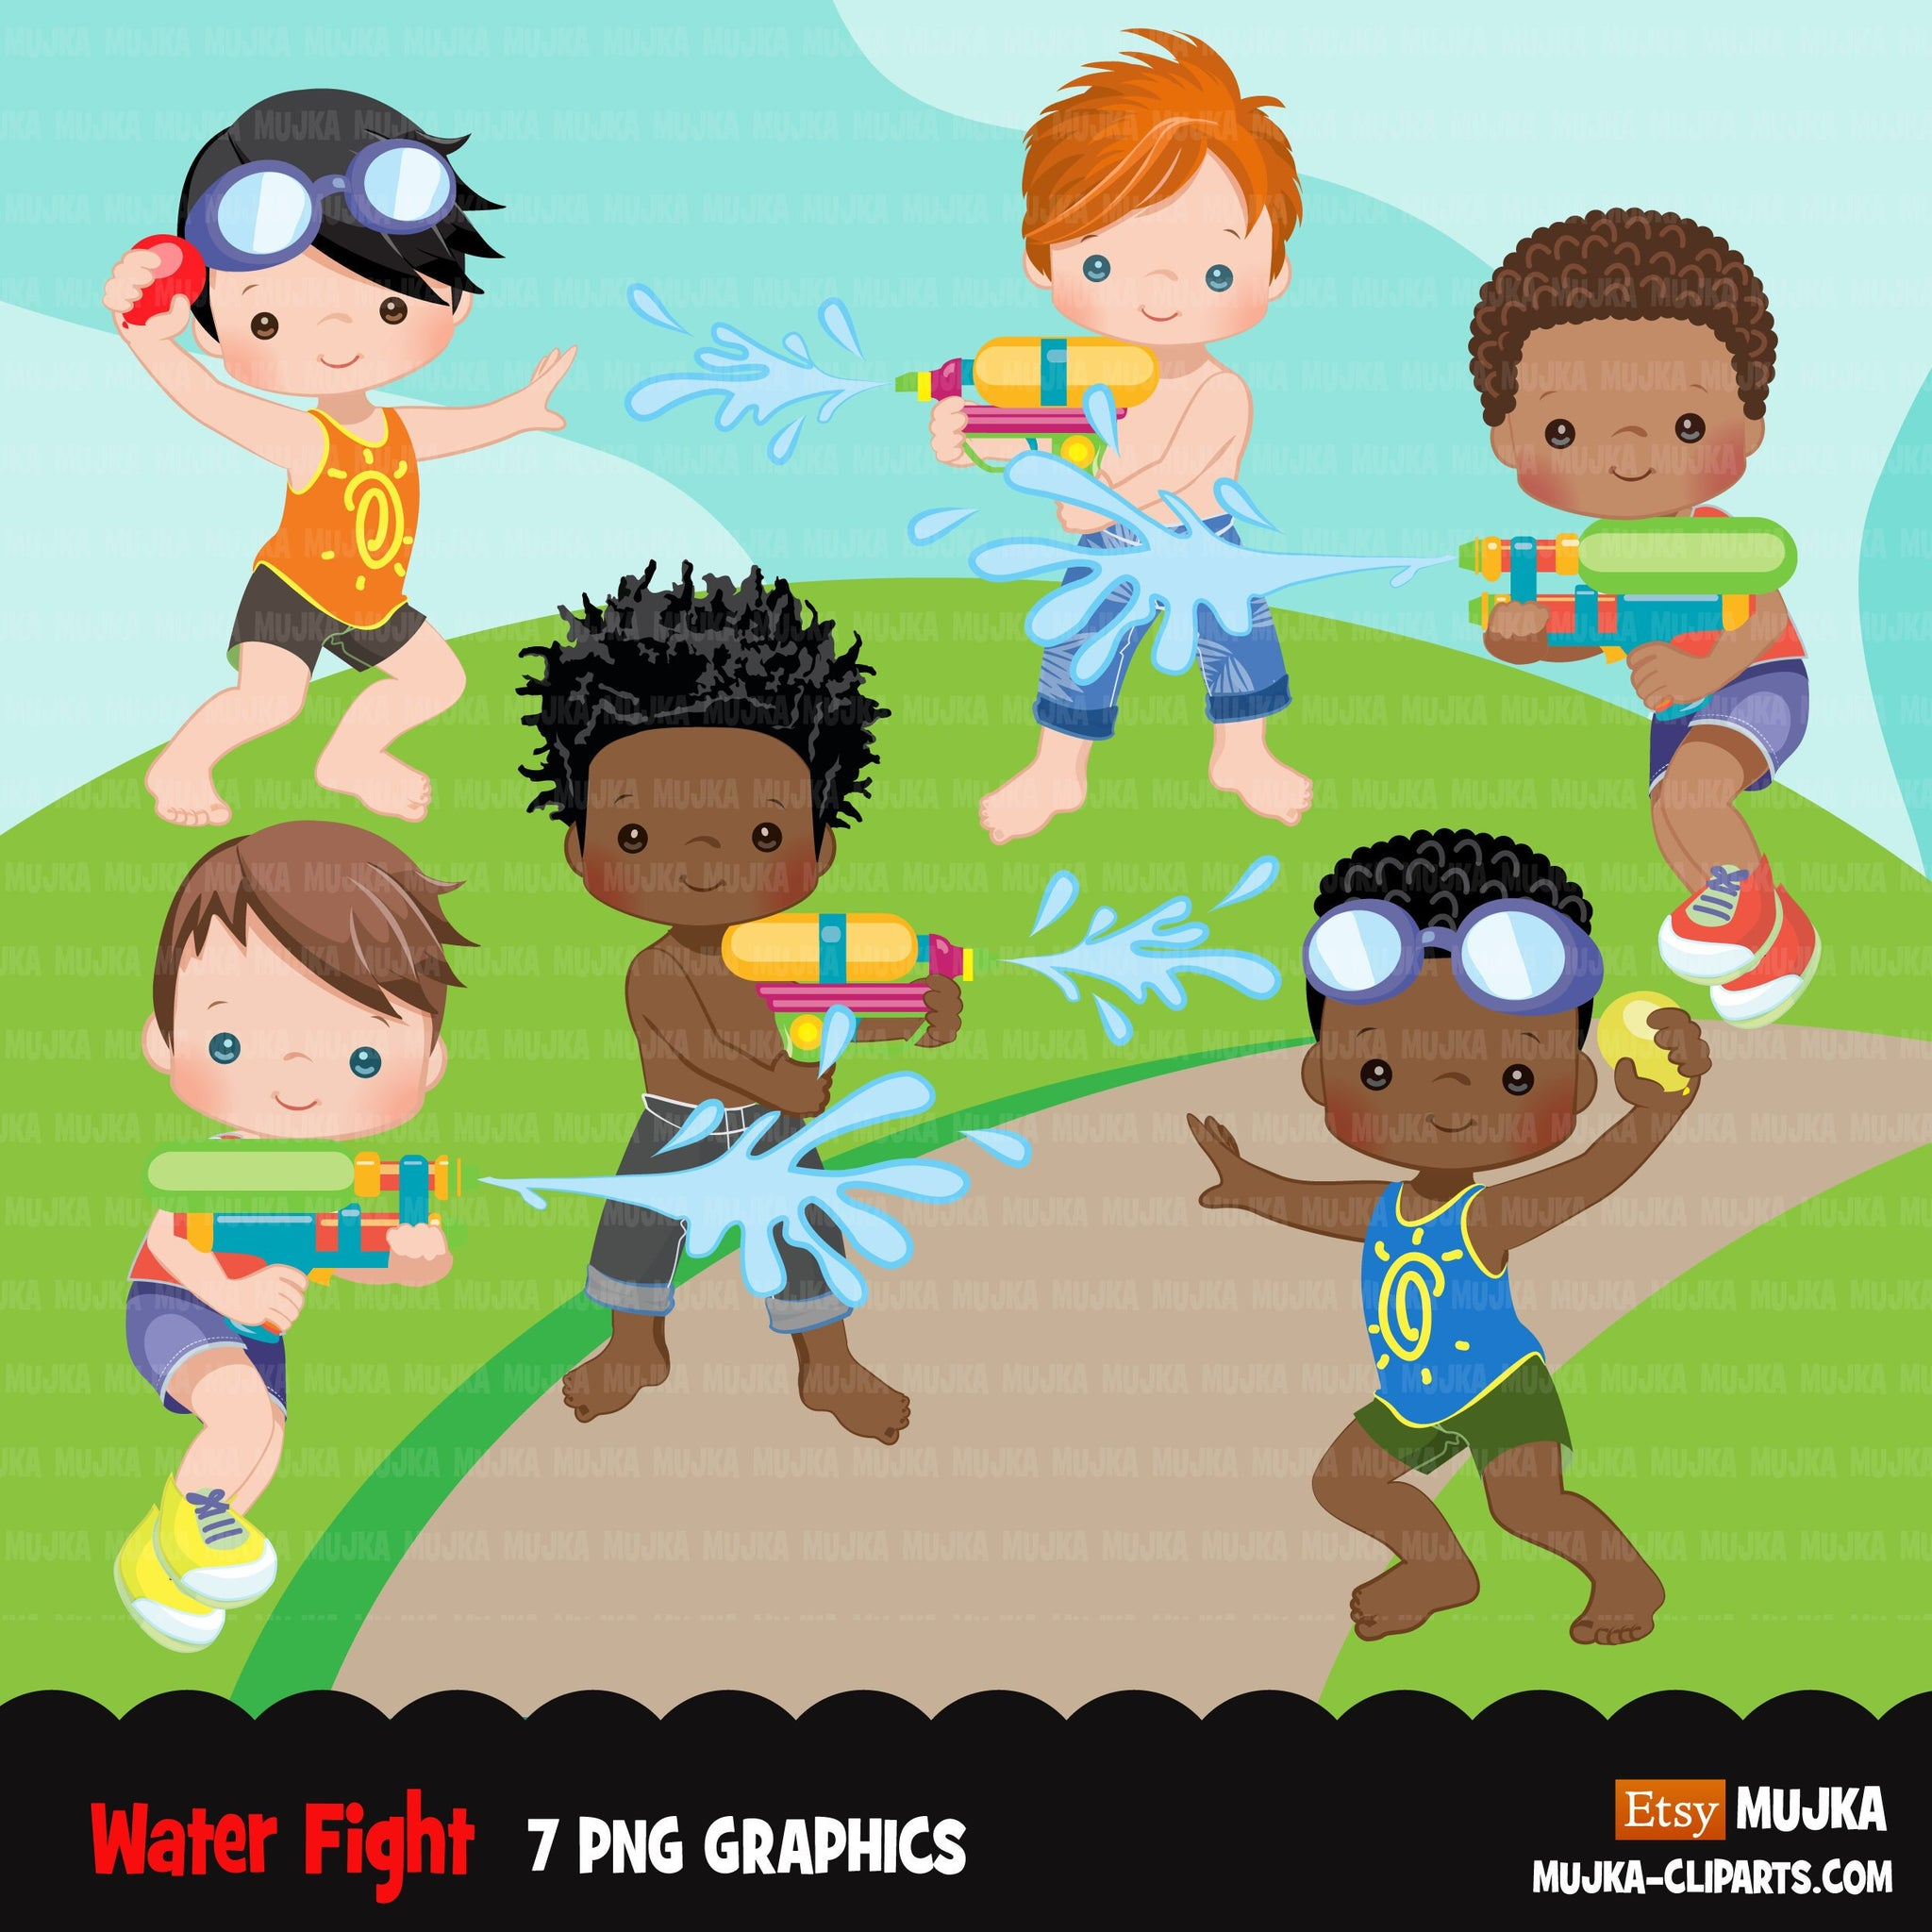 Water gun fight clipart, boys, black boys outdoors water balloon fight, summer birthday graphics, commercial use PNG clip art